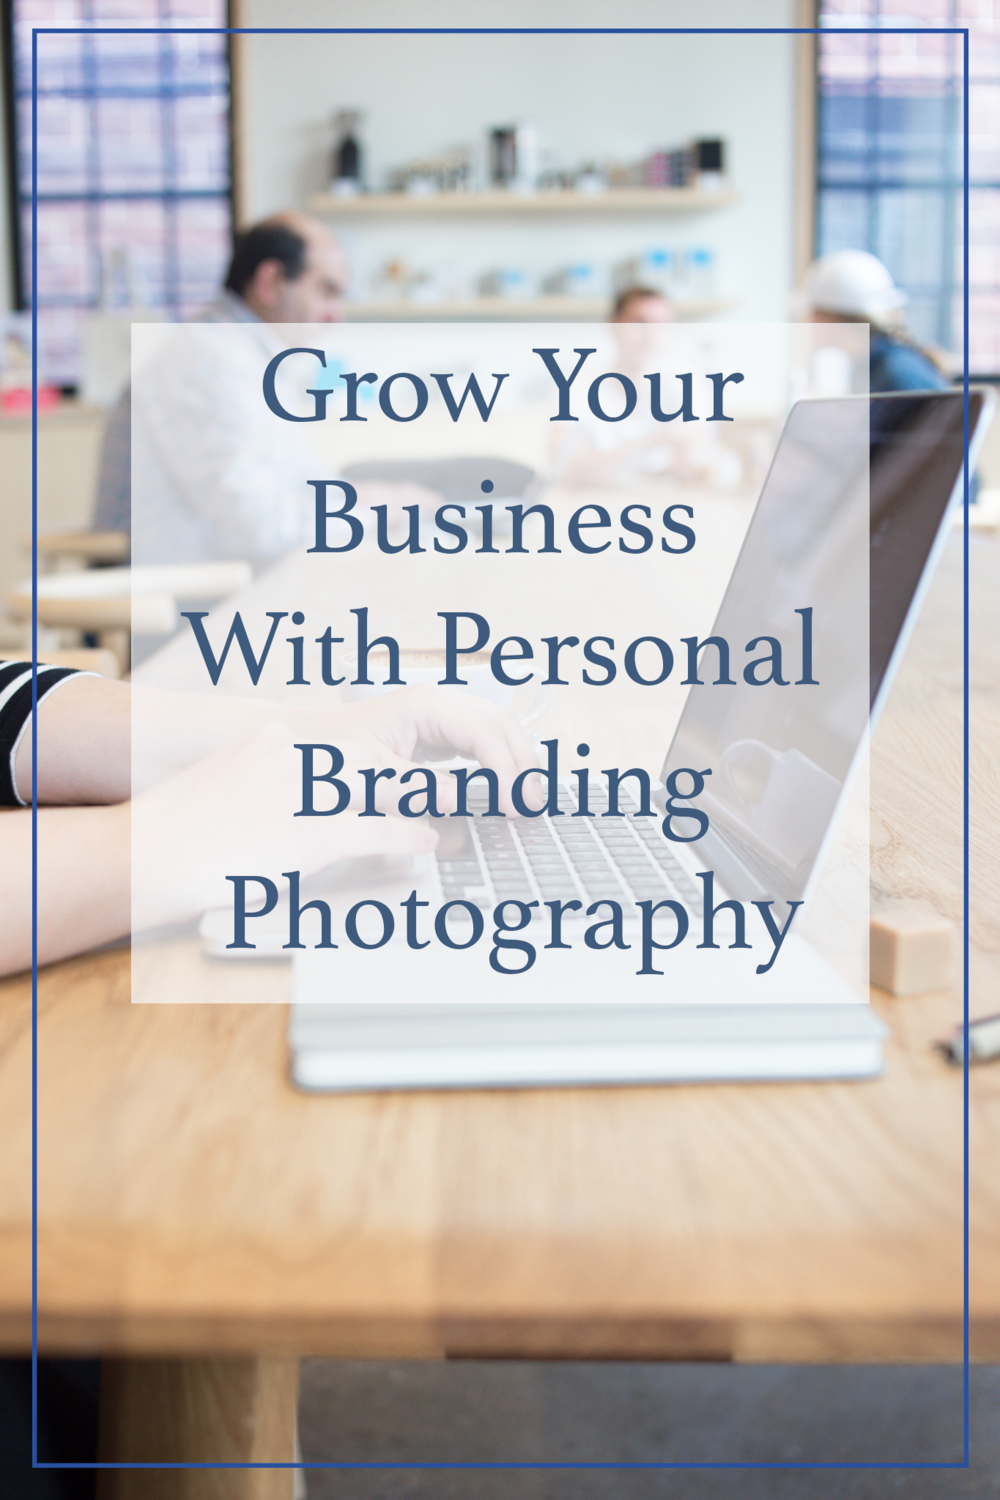 Gain more clients with professional images on your website